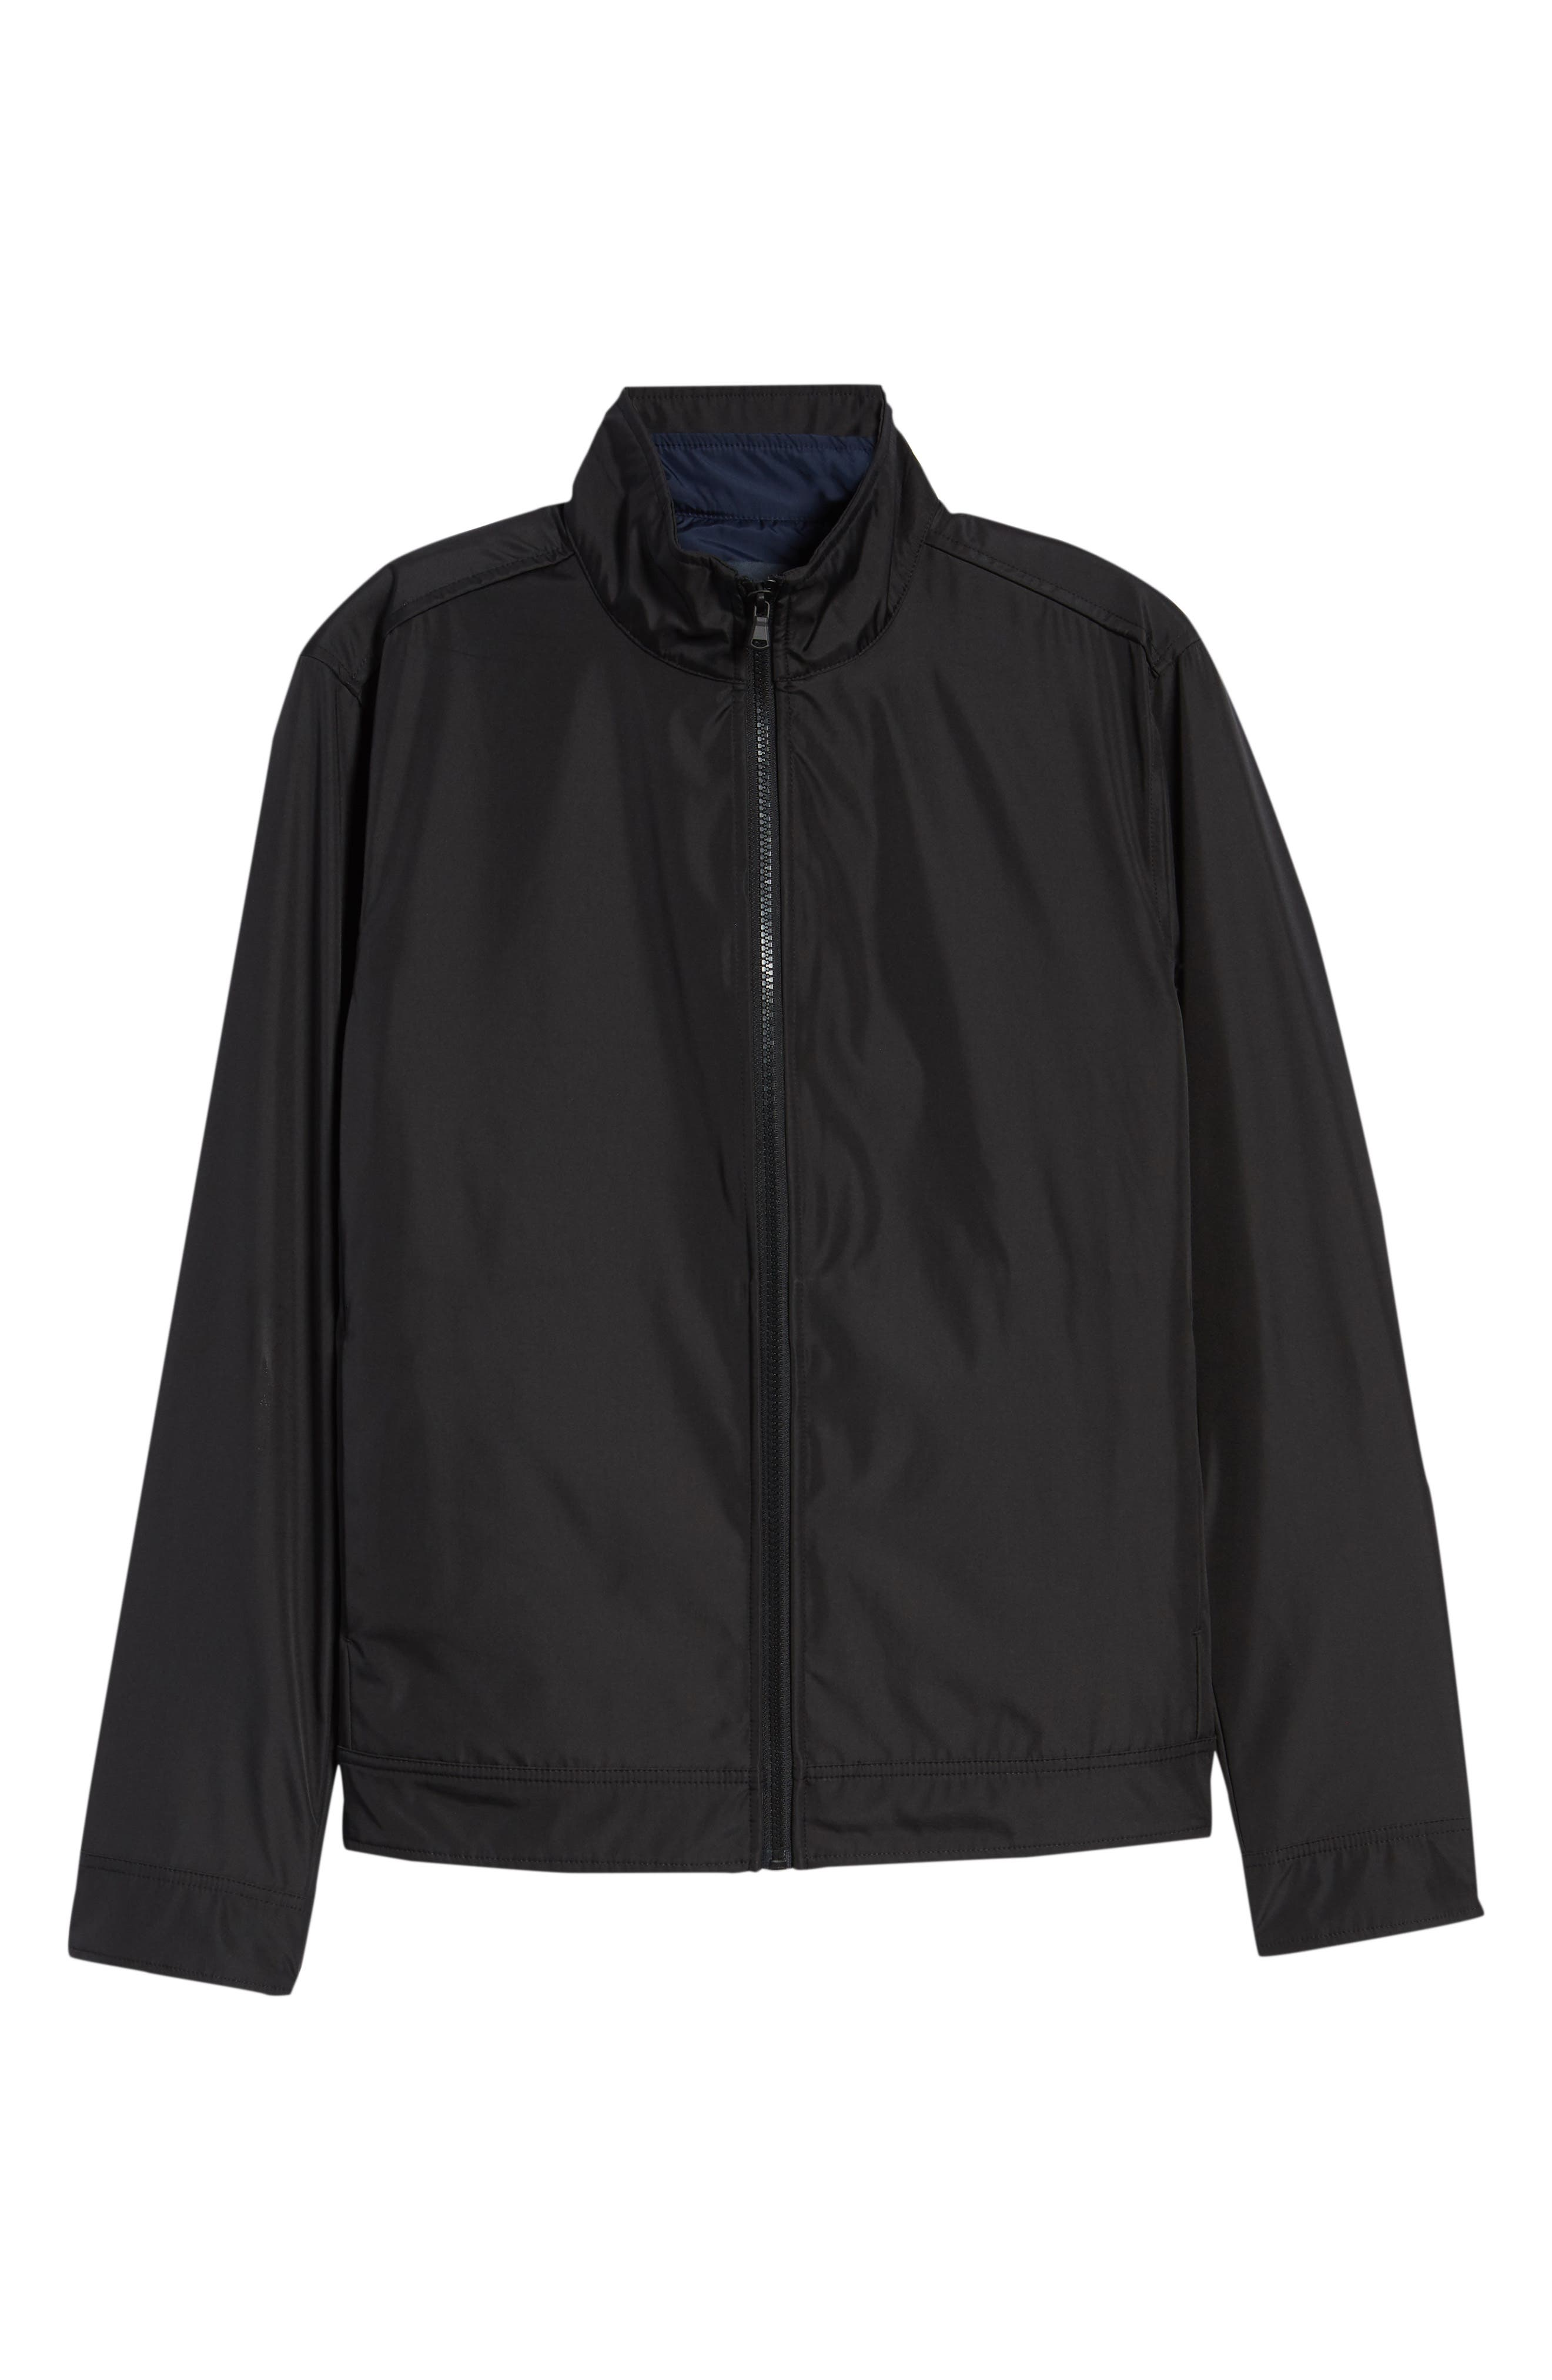 ZACHARY PRELL, Oxford 2-in-1 Jacket, Alternate thumbnail 6, color, BLACK